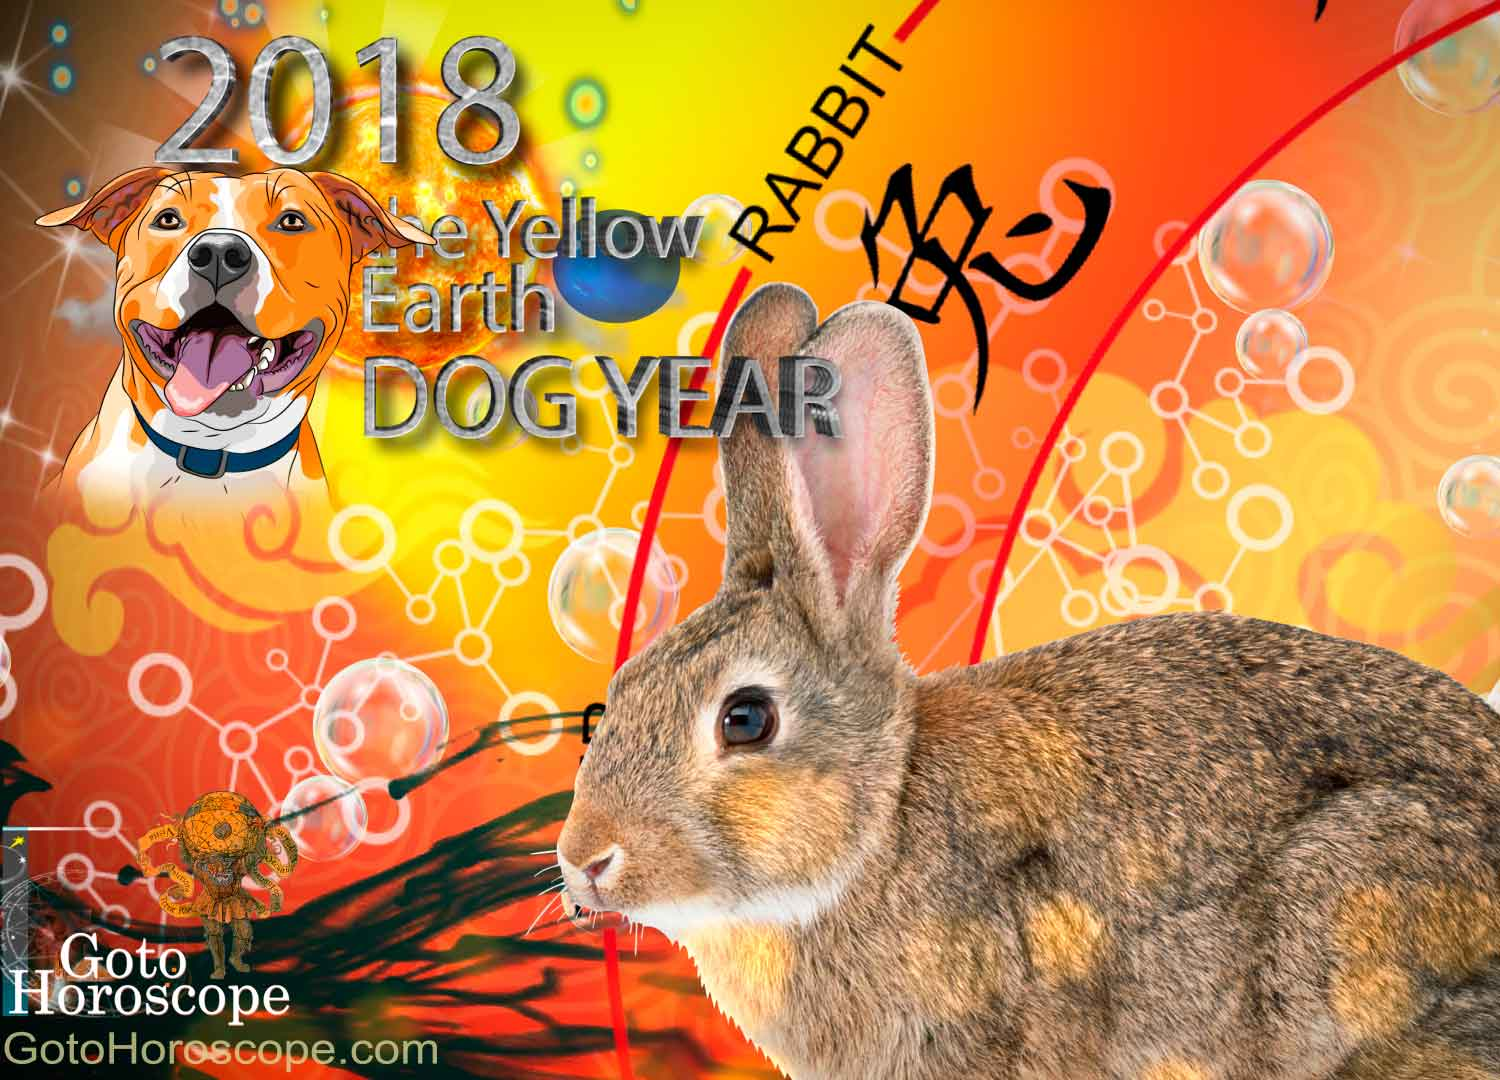 Rabbit 2018 Horoscope for the Yellow Earth Dog Year